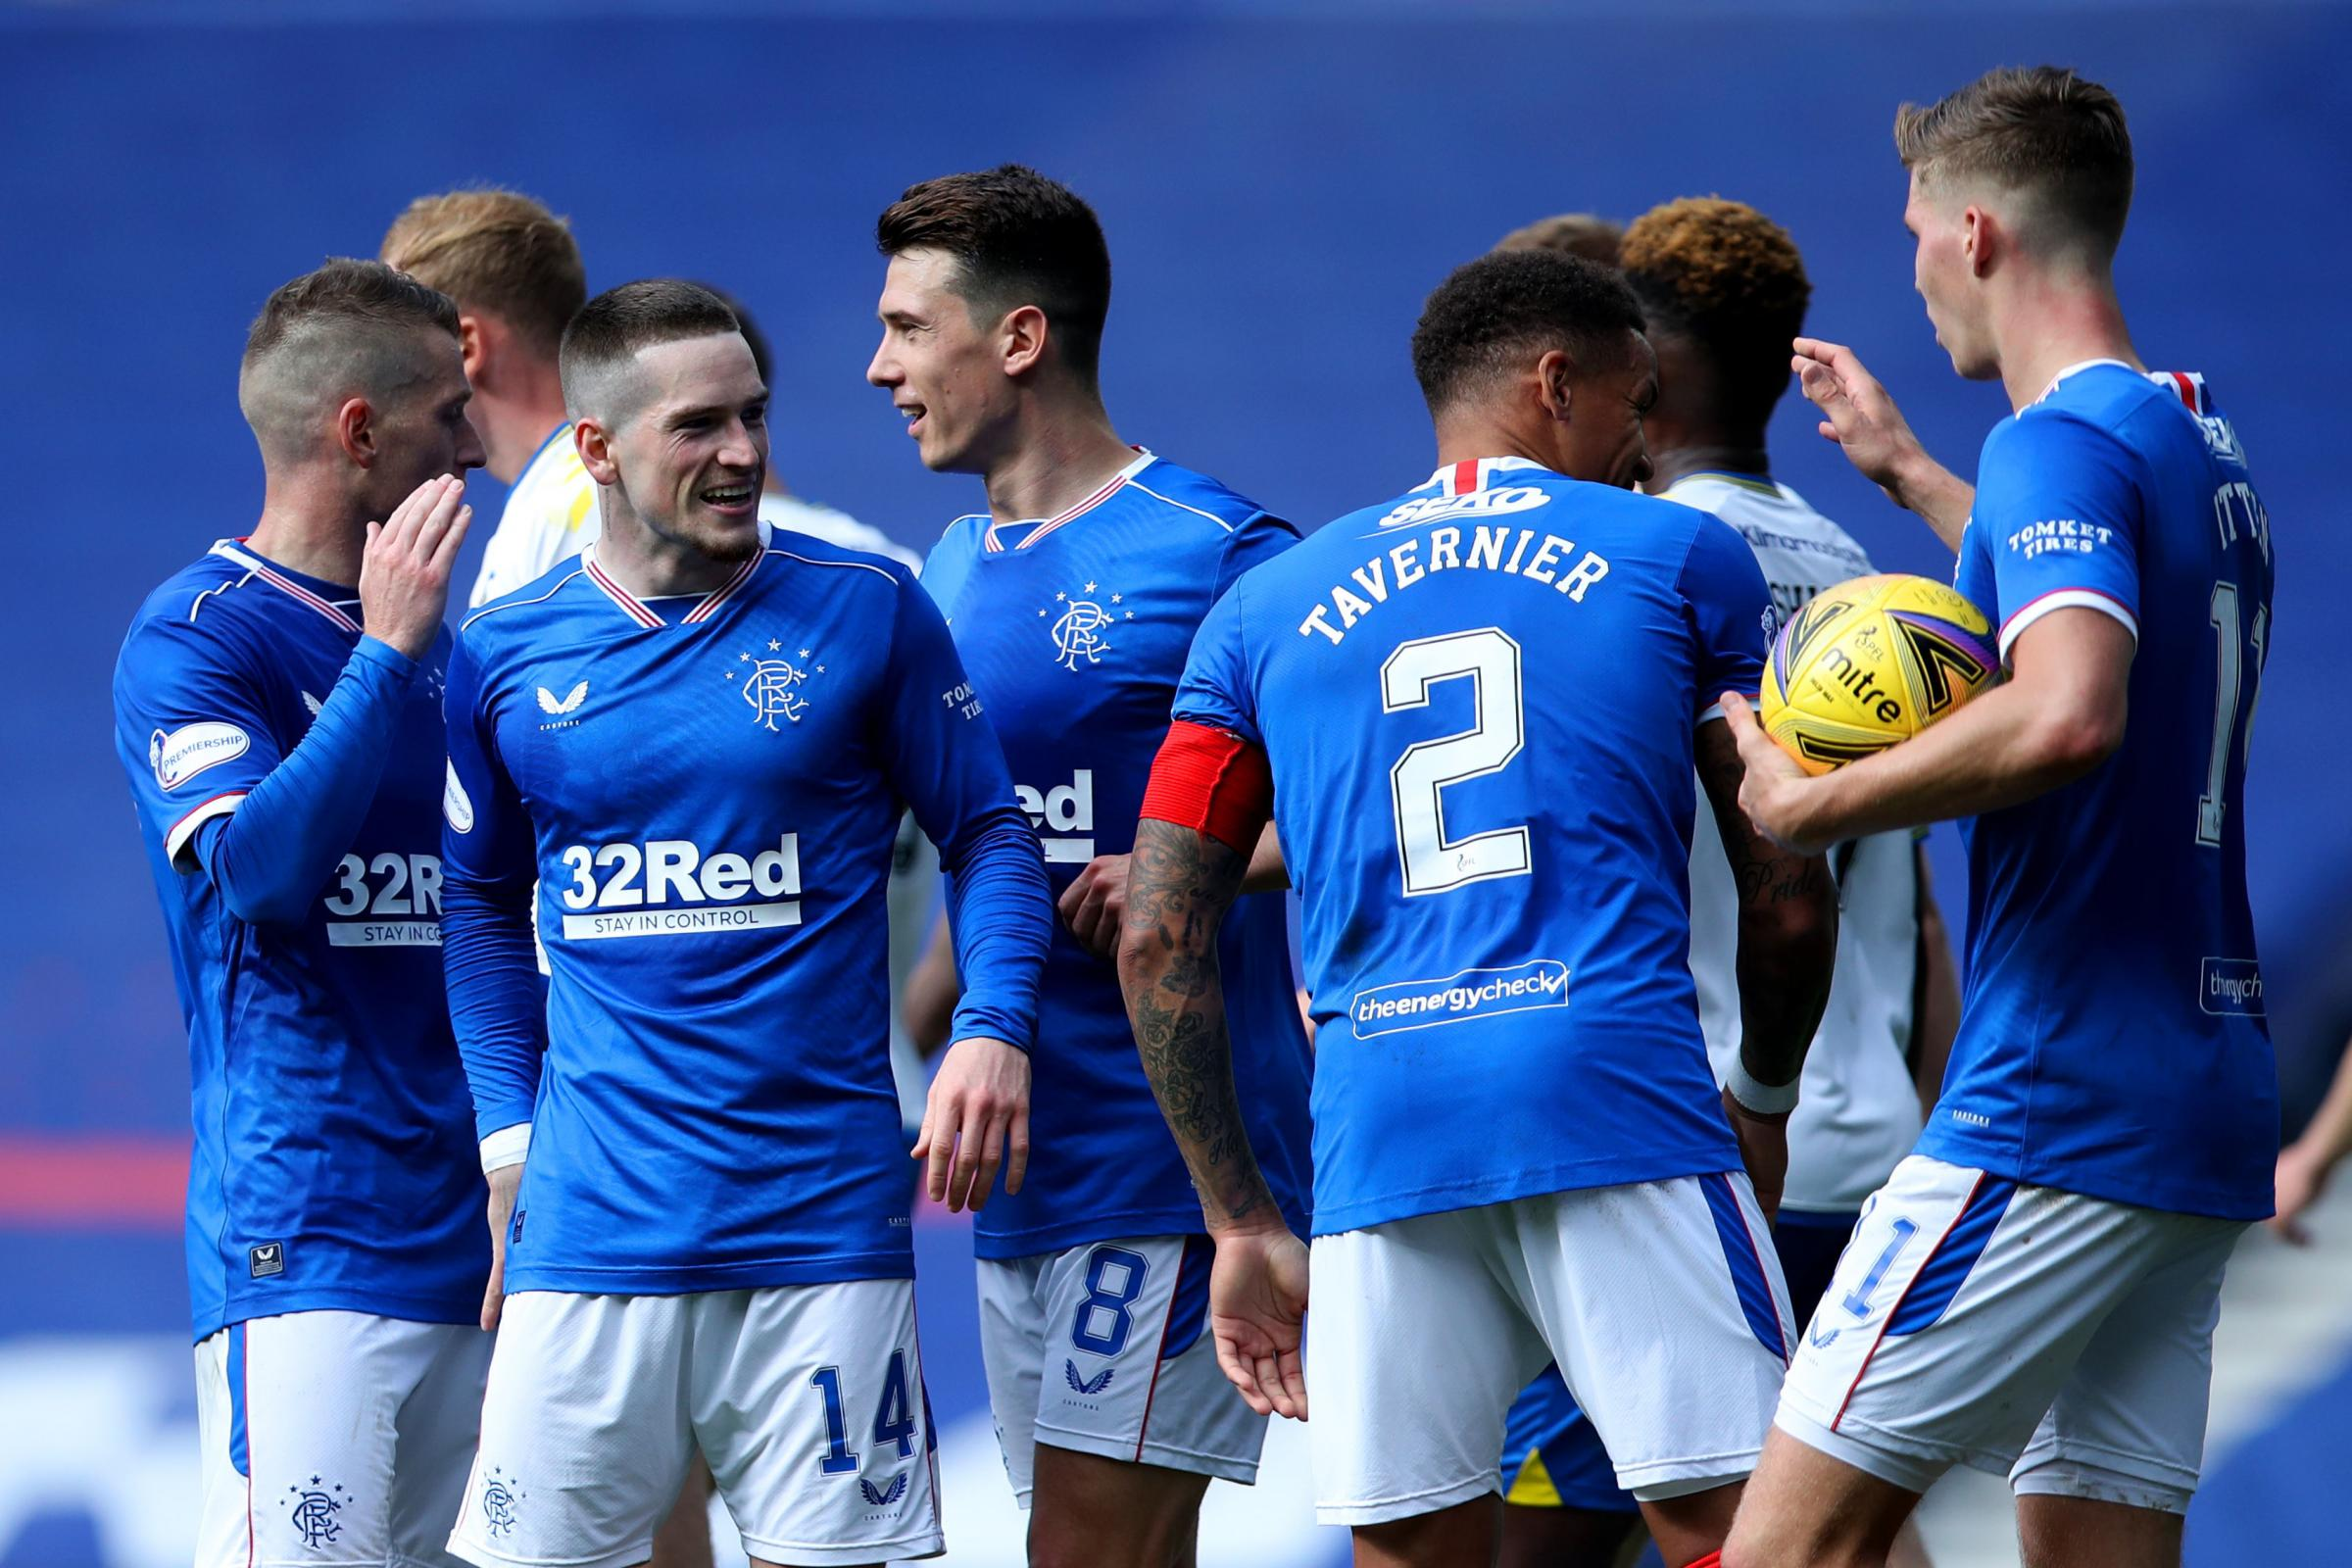 Rangers 2-0 Kilmarnock: Ryan Kent comes to the fore for Steven Gerrard's side as Alfredo Morelos is nowhere to be seen at Ibrox